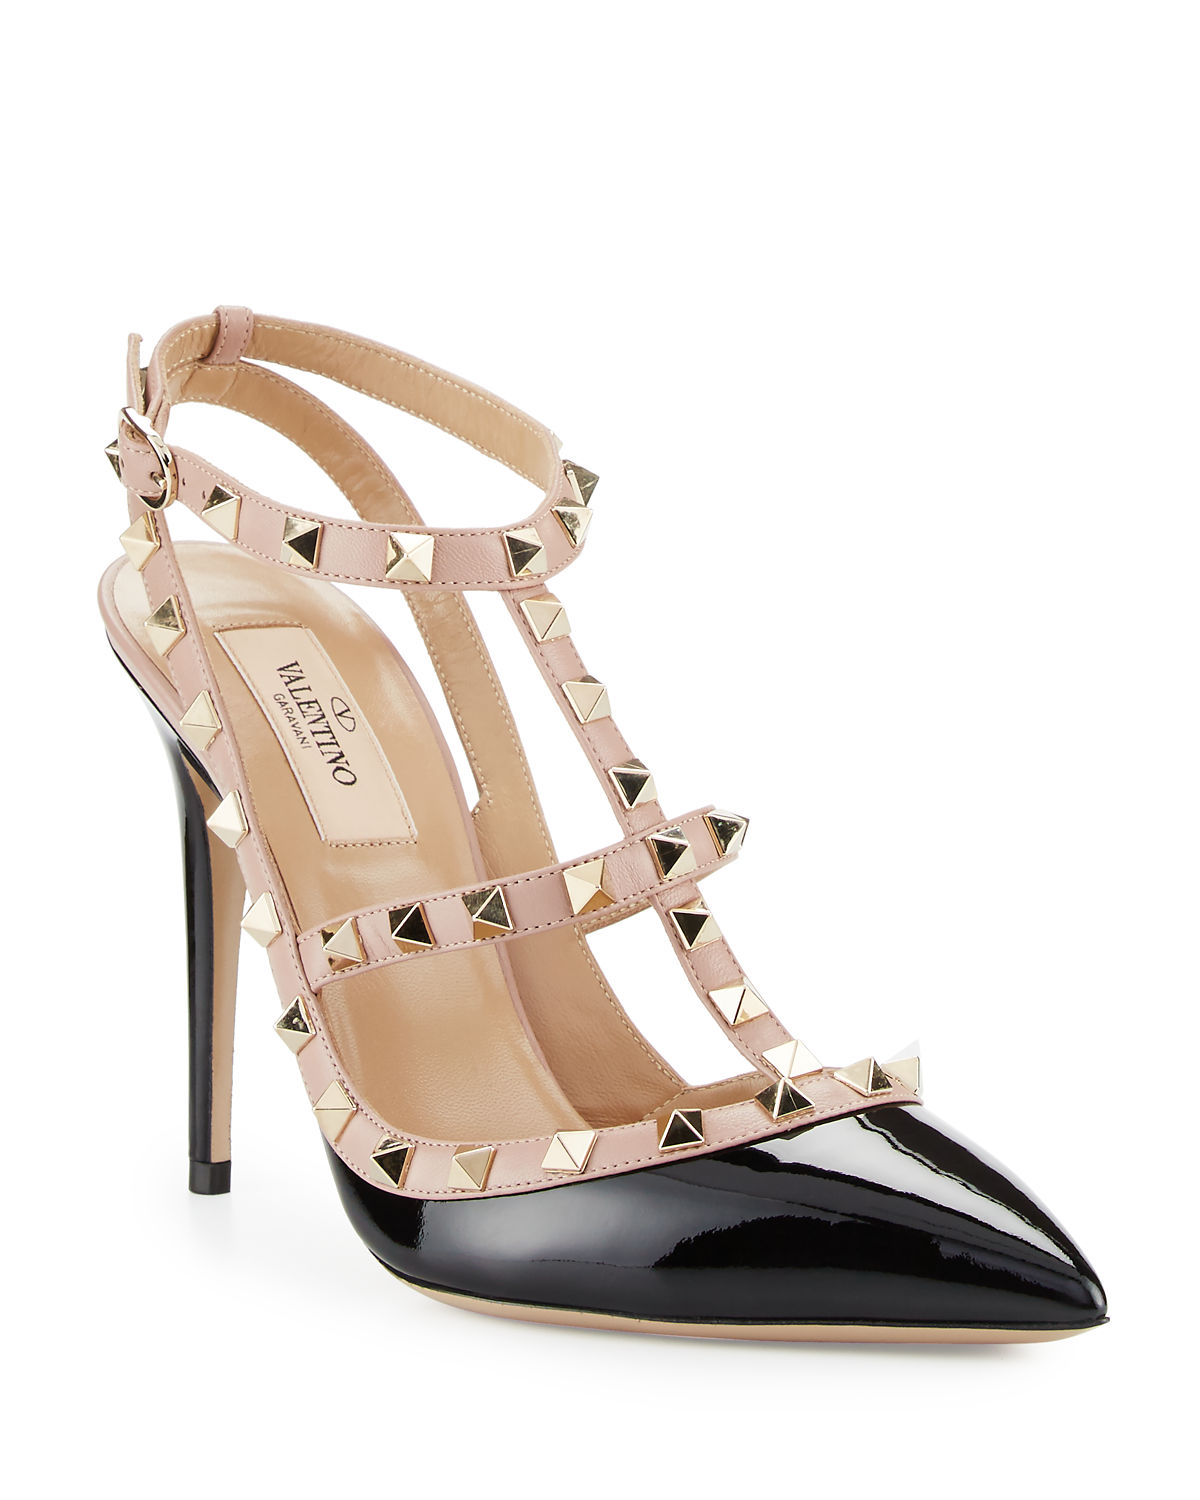 wholesale online great deals 2017 shop for Rockstud Slingback 100mm Pump